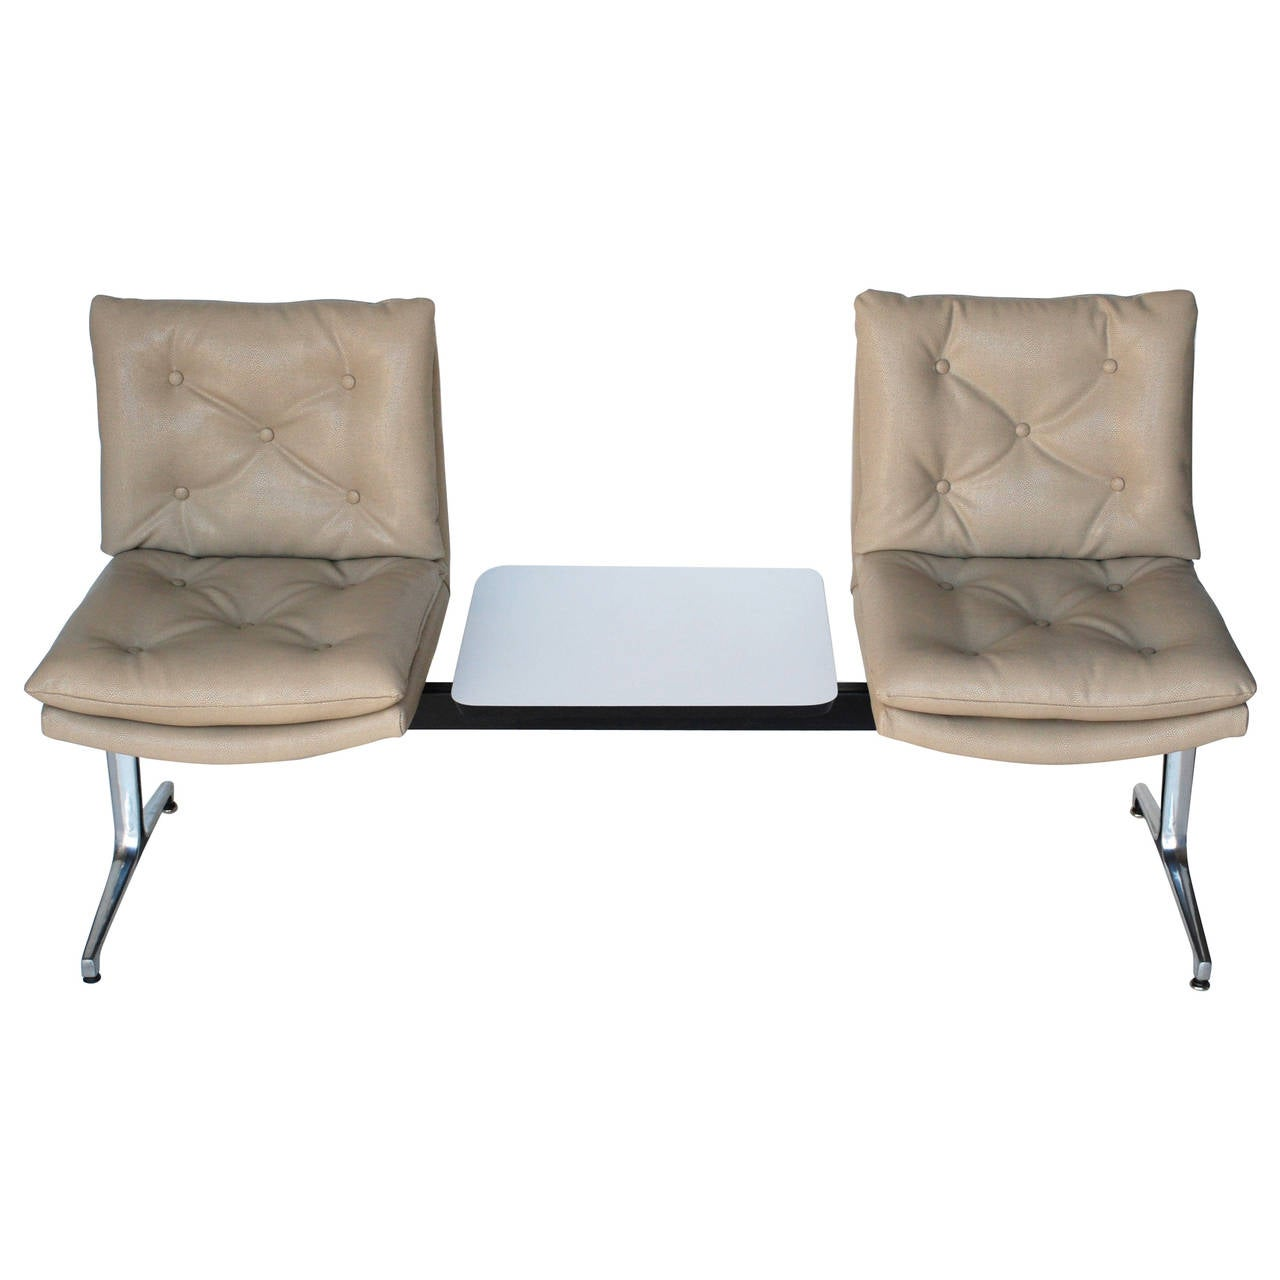 Two Seater Herman Miller Style Airport Bench With Table At